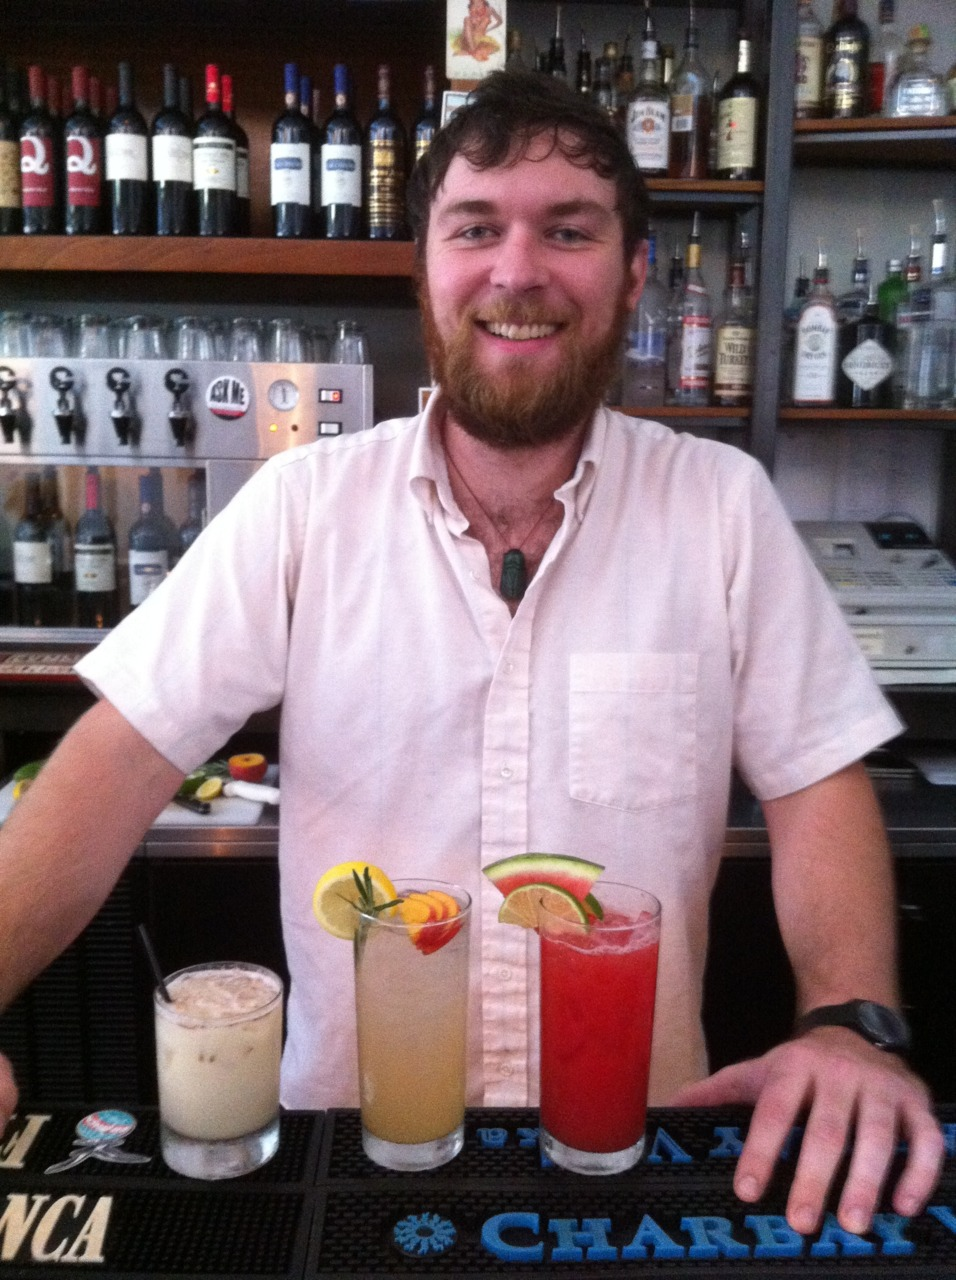 It's too hot!     Looking for a thirst quencher?  Stay away from soft drinks that tend to dehydrate.  Our trusty bartender, Zack Kennedy, poses with three refreshing non-alcoholic drinks.  Left to right, horchata (more on that below), lemonade with peach and rosemary, watermelon agua fresca.       Horchata   Our good friend, Bertis Downs, brought us a sack full of tiger nuts from Valencia, Spain.  What are tiger nuts?  Well, they're a tuber, not a nut ( chufa  in Spanish).  They're so sought after, they have protected D.O.C. status.  The nuts are ground and spiced with cinnamon to make a milky, yet dairy-free, beverage.  It's served ice-cold, and wouldn't be bad at all with a splash of dark rum.  In this form, it tastes like a light, summery eggnog.  We have a limited supply at the moment, but look for it on our menu in the very near future.       You may have seen horchata at Mexican restaurants.  This is a close cousin, made from rice instead of tiger nuts.